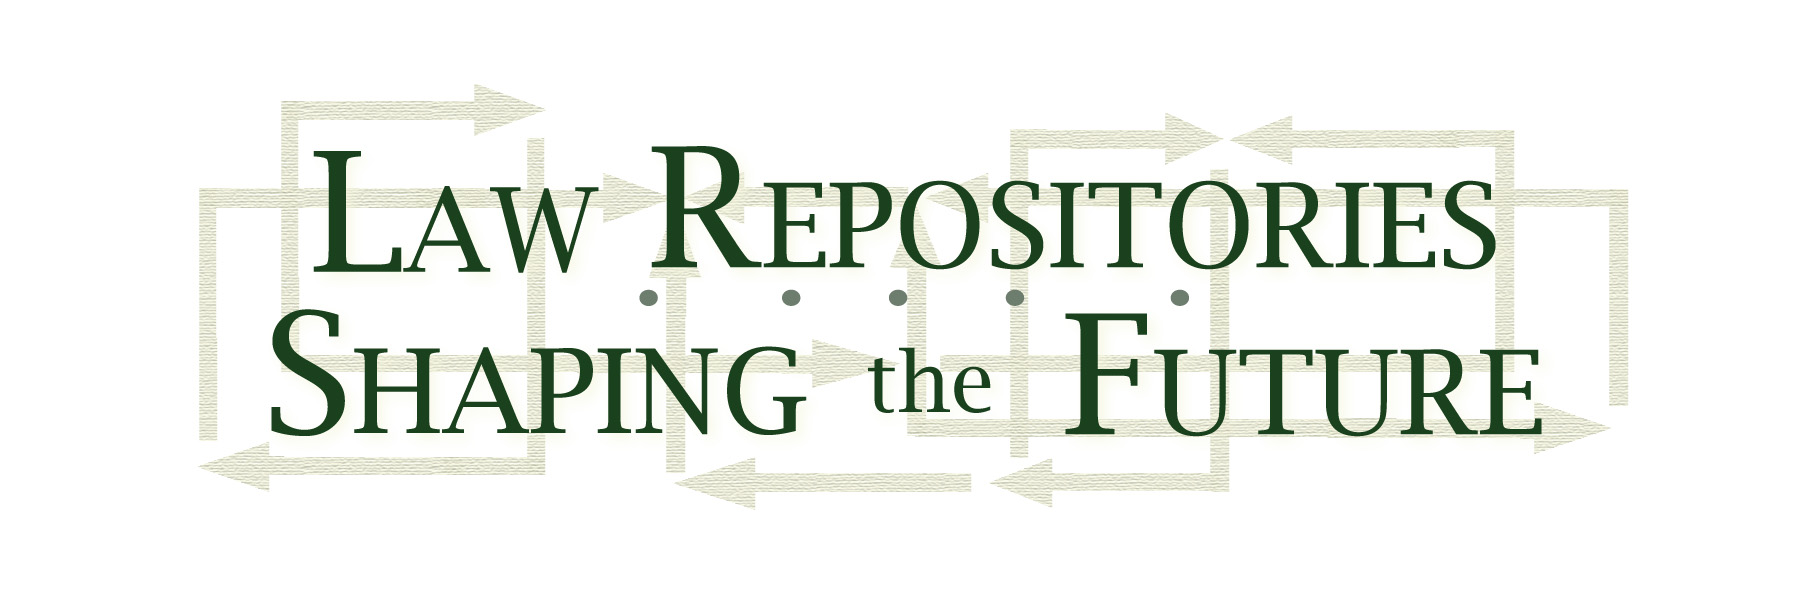 Law Repositories 2015: Shaping the Future